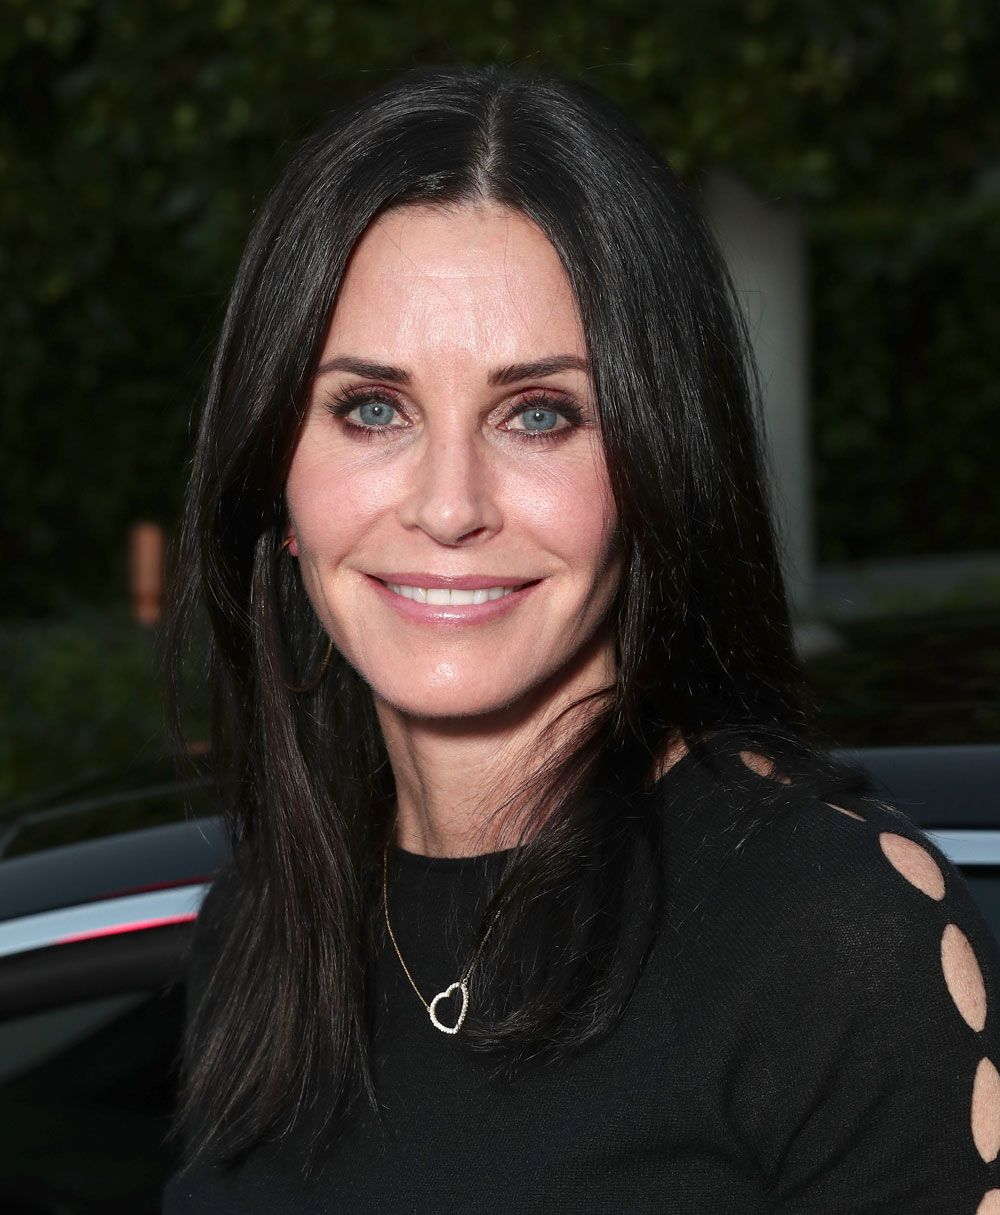 Courteney Cox tried the Friends Instagram filter and this is what happened